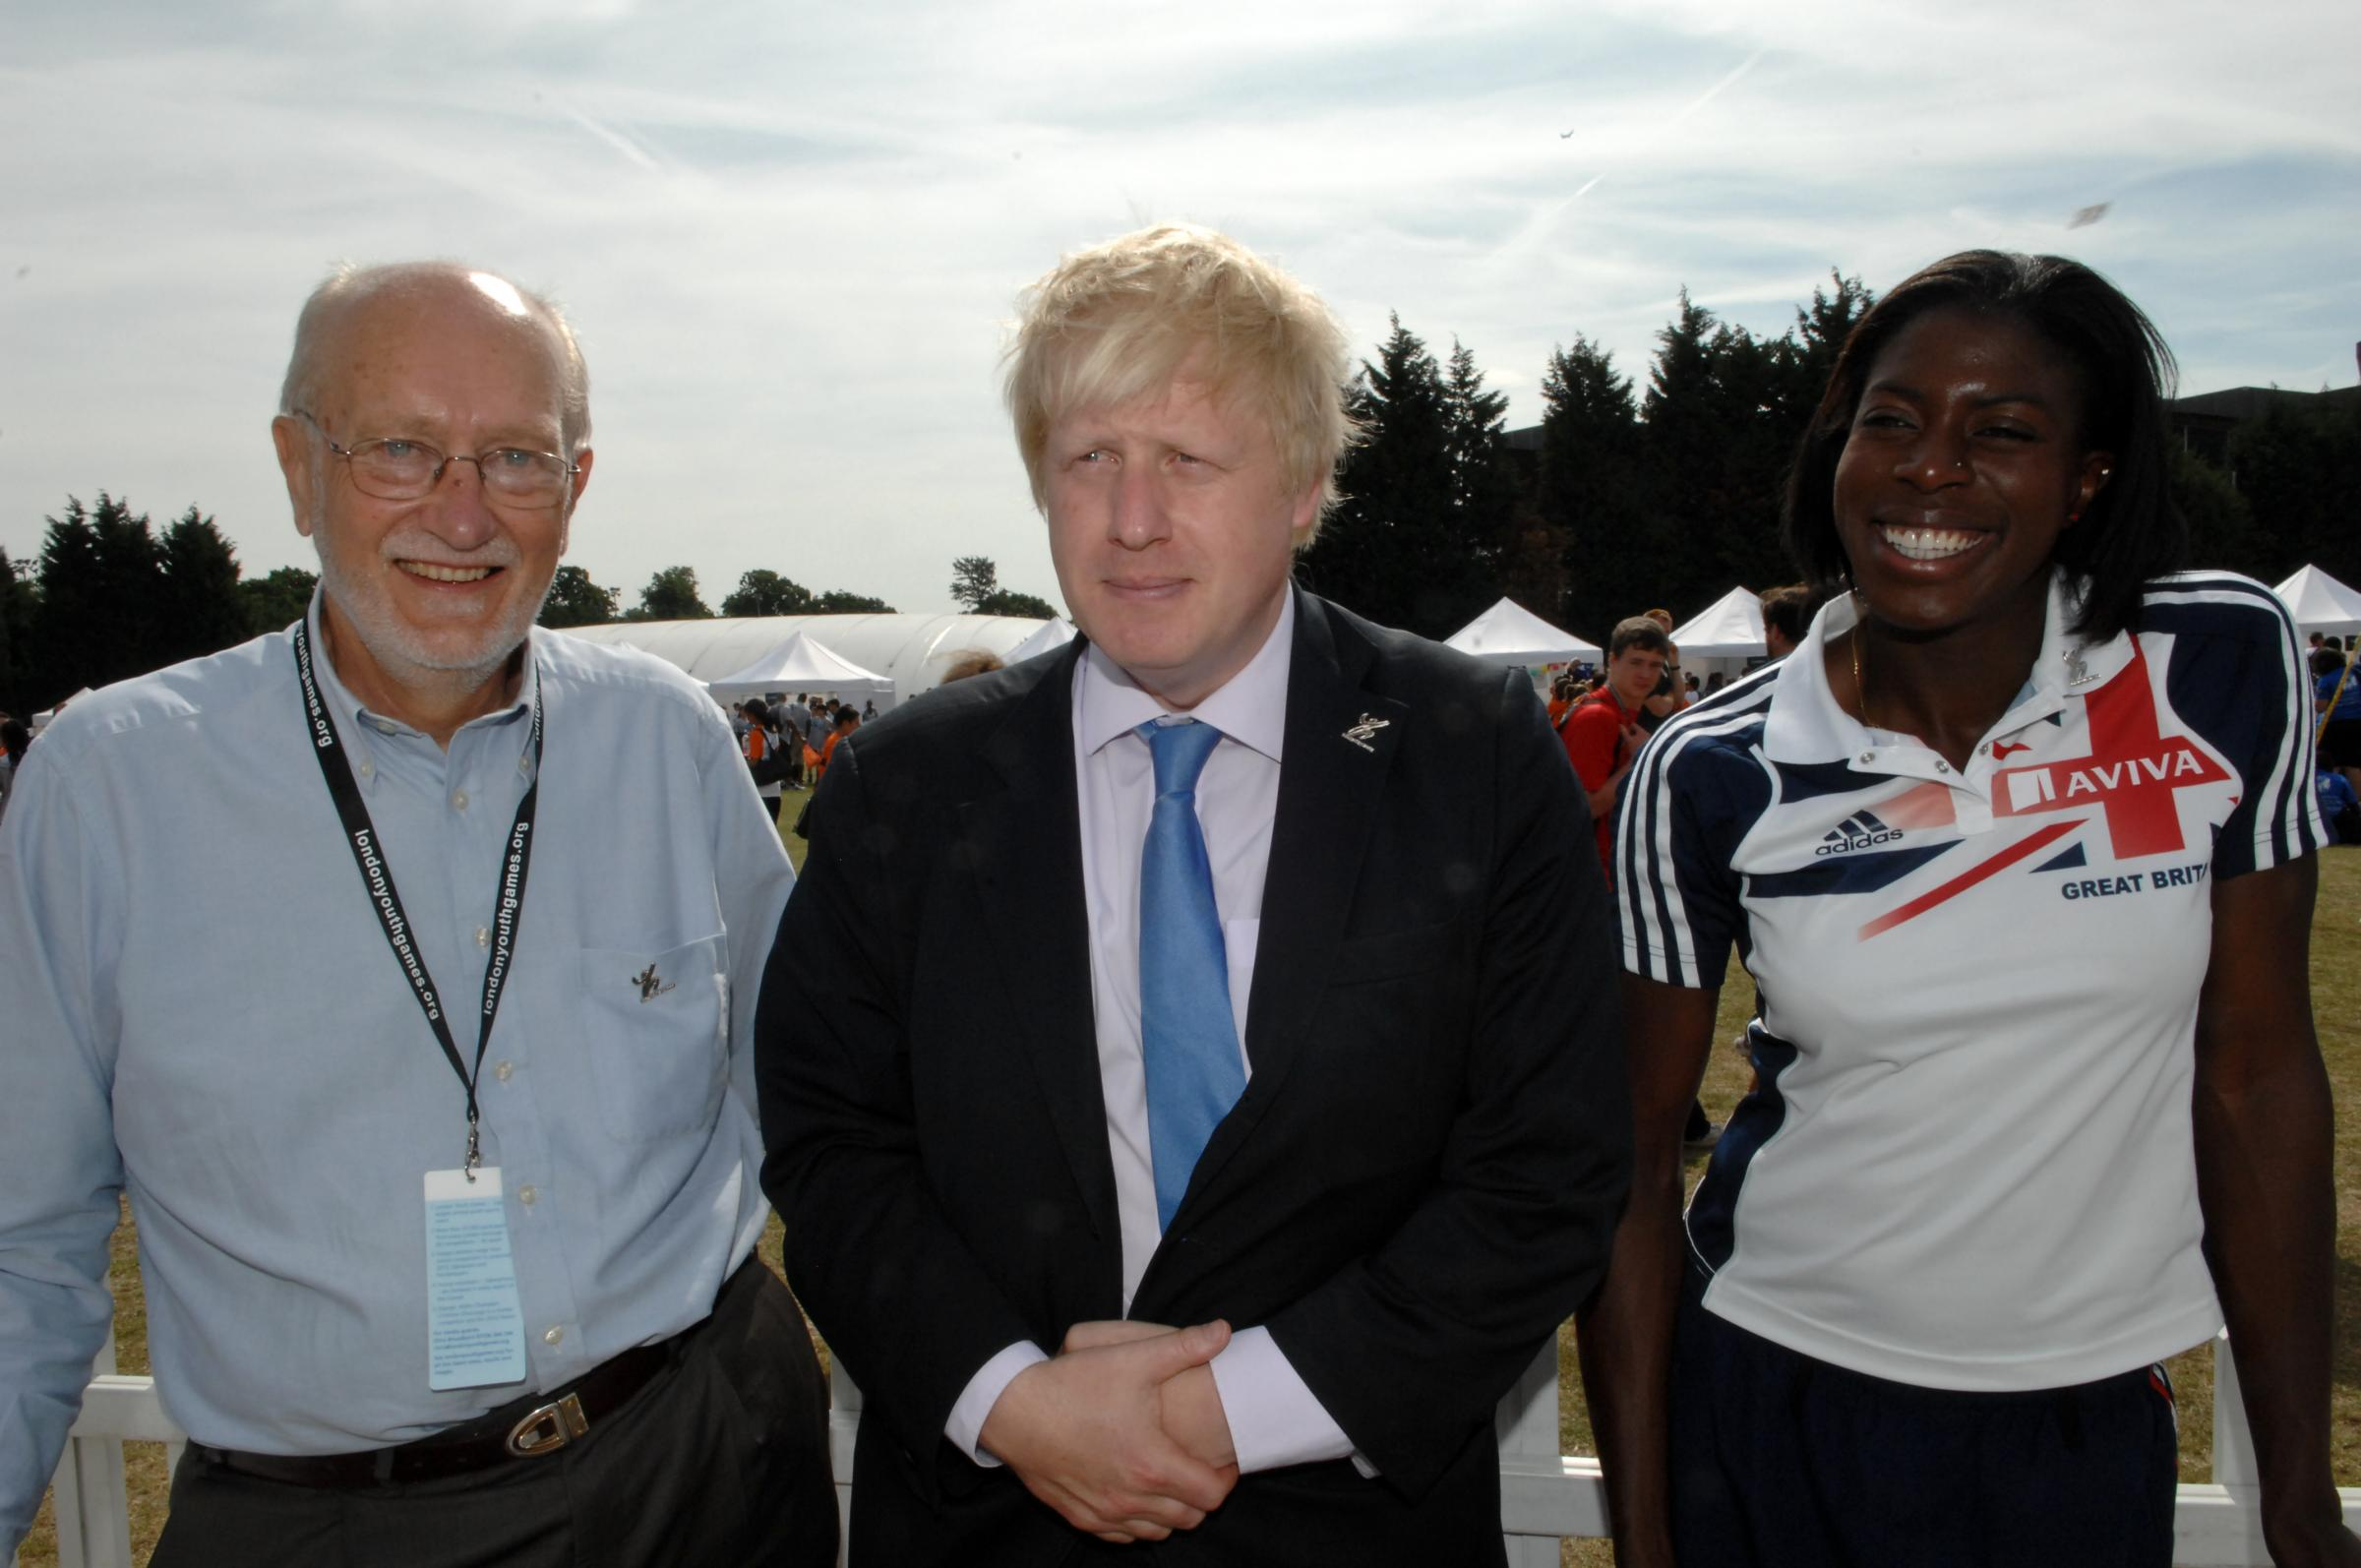 Anthony Kendall (left) with London mayor Boris Johnson and world 400m champion Christine Ohuruogo